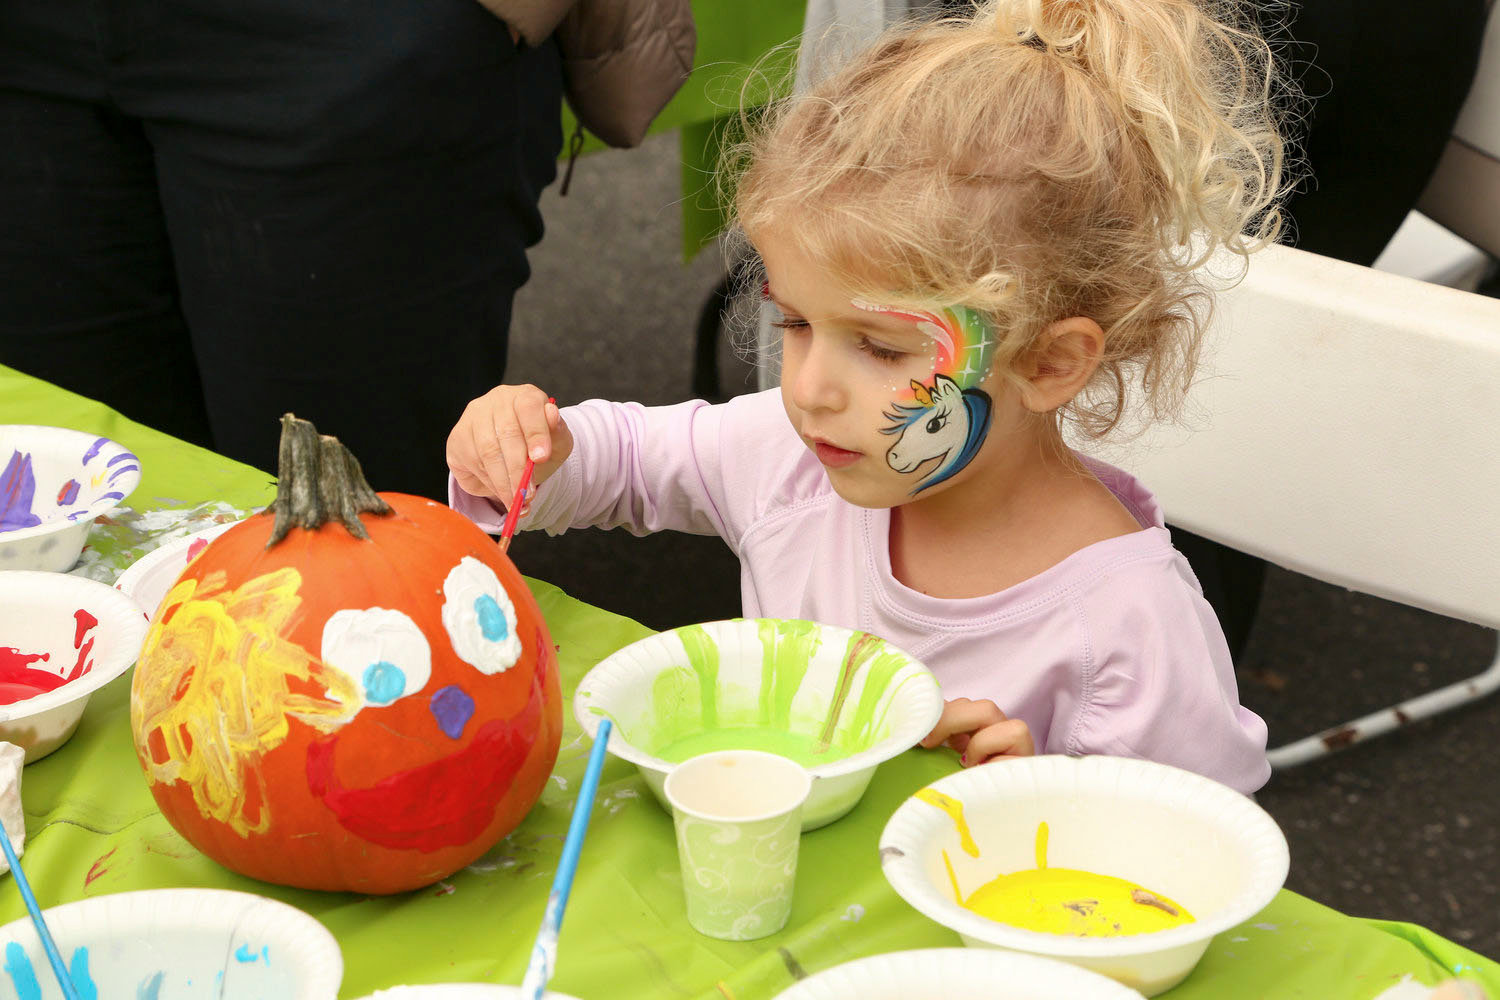 Dalia Madjour showed off her artistic abilities by painting a pumpkin at the 2018 Arts Below Sunrise Music & STEAM festival.